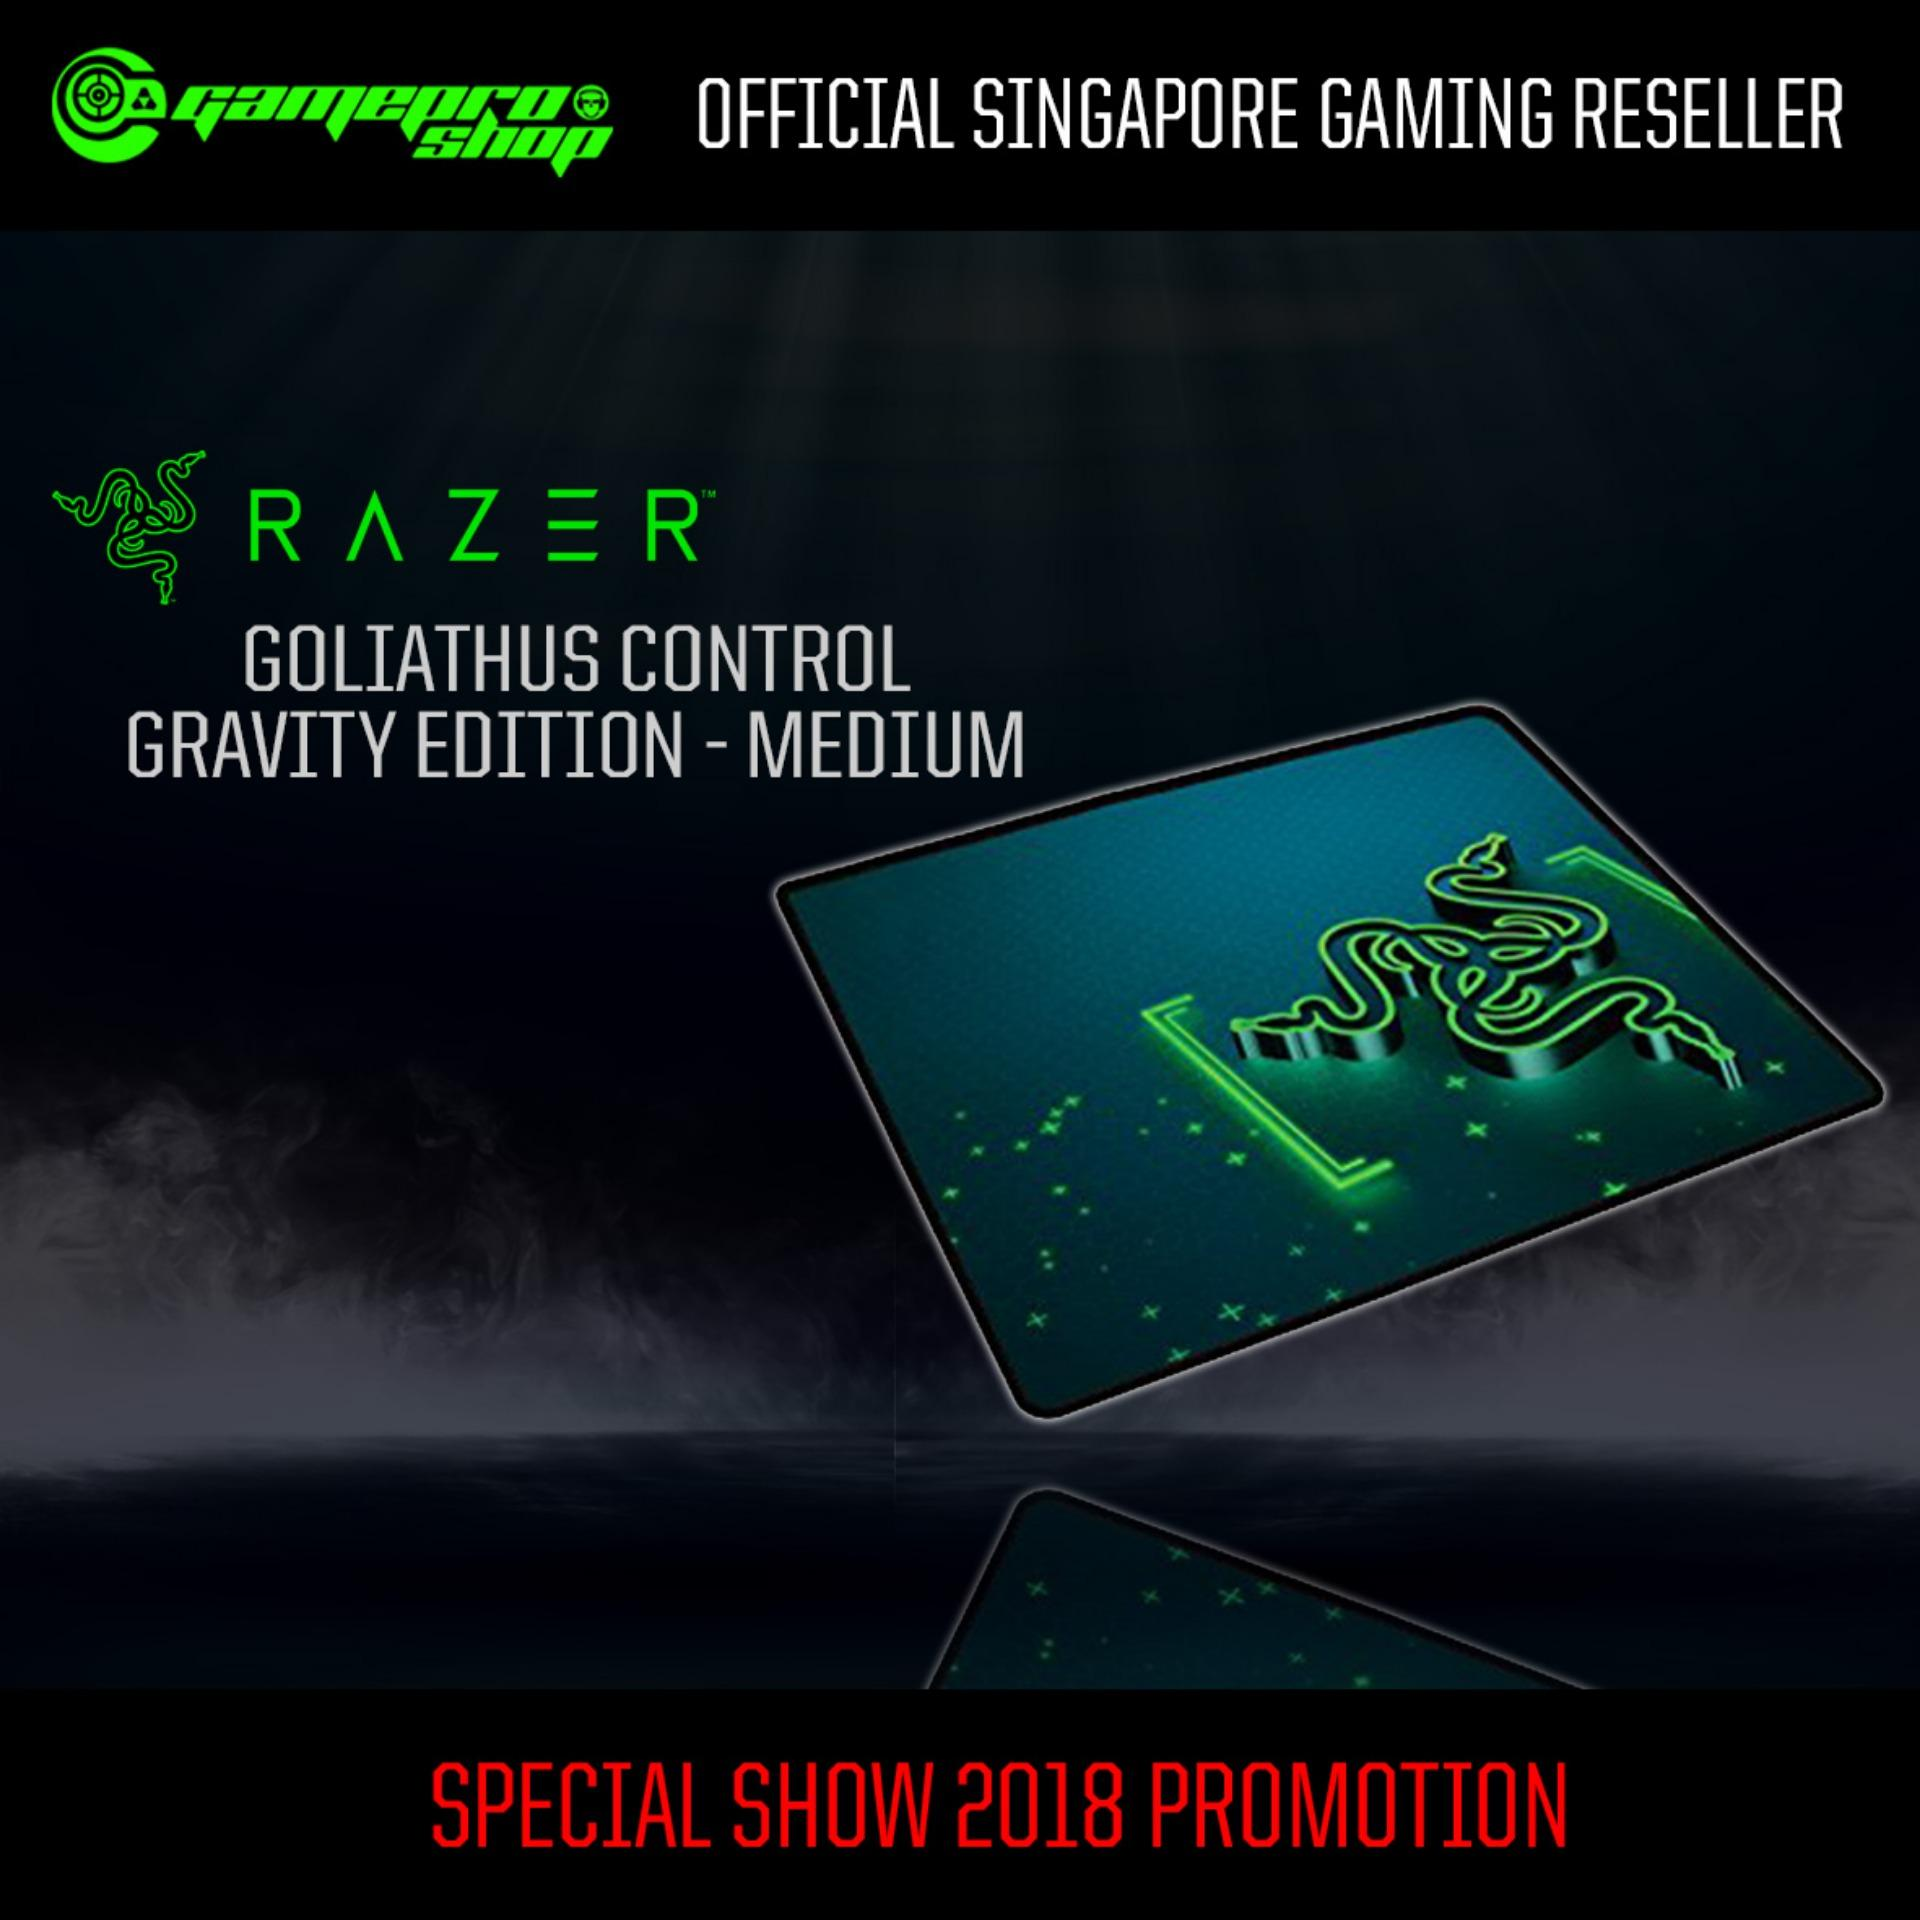 Razer Goliathus Control Gravity Edition Medium Gss Promo Deal